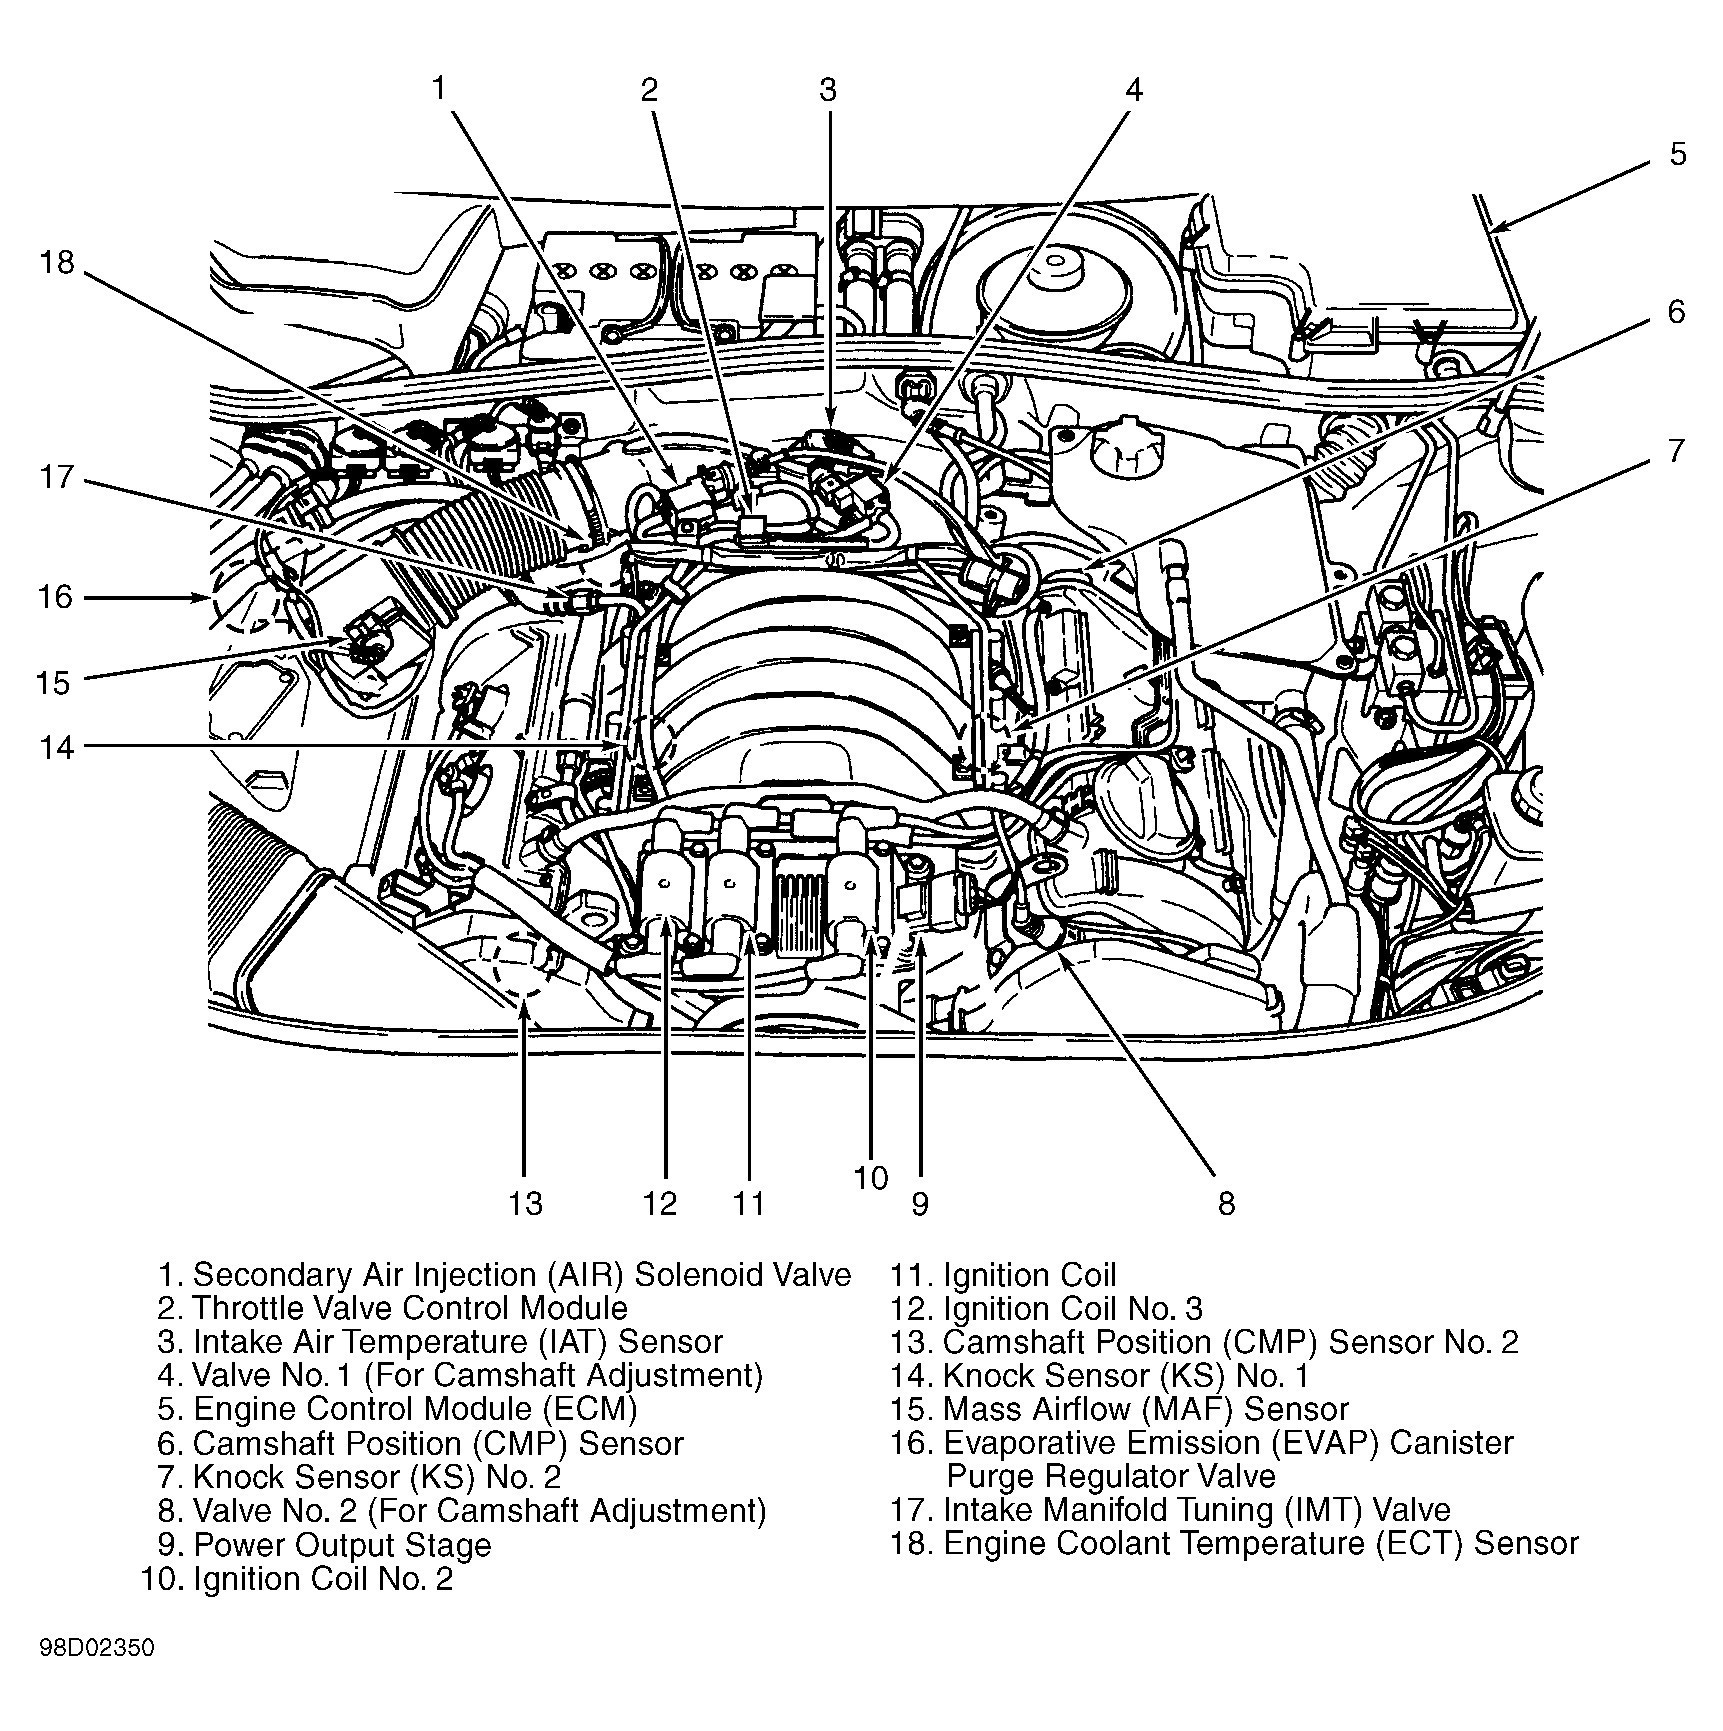 dodge durango 4 7 engine diagram wiring library 2004 Dodge Durango AC Diagram 2004 durango 5 7 engine diagram custom wiring diagram u2022 rh littlewaves co 2002 dodge durango